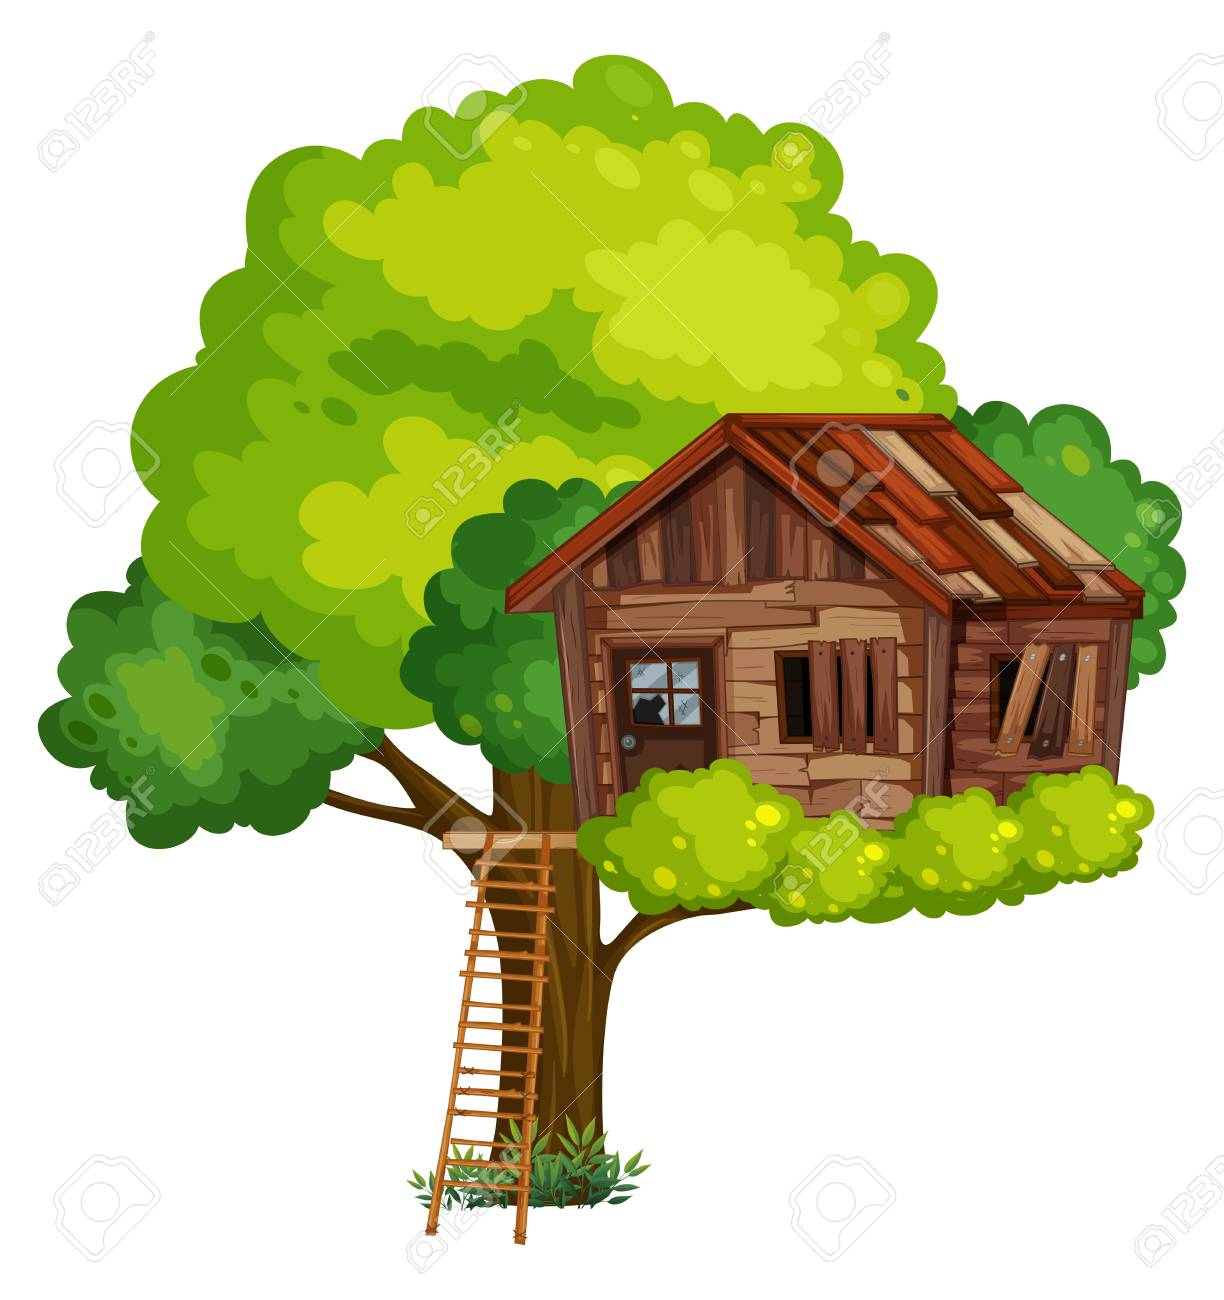 Old treehouse made of wood illustration.